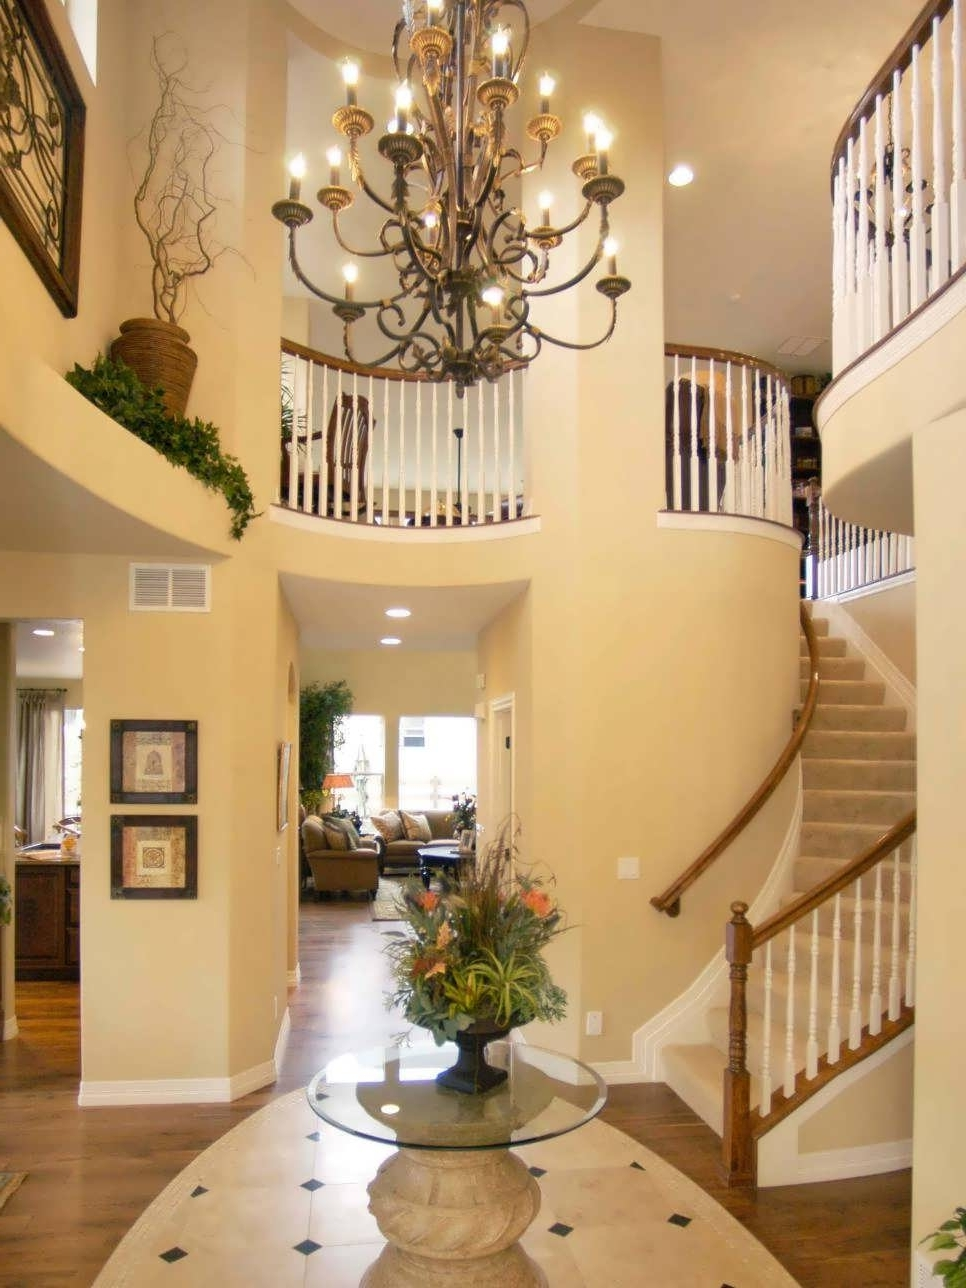 Widely Used Chandeliers Design : Fabulous Large Orb Chandelier Foyer Chandeliers Inside Hanging Outdoor Entrance Lights (View 19 of 20)